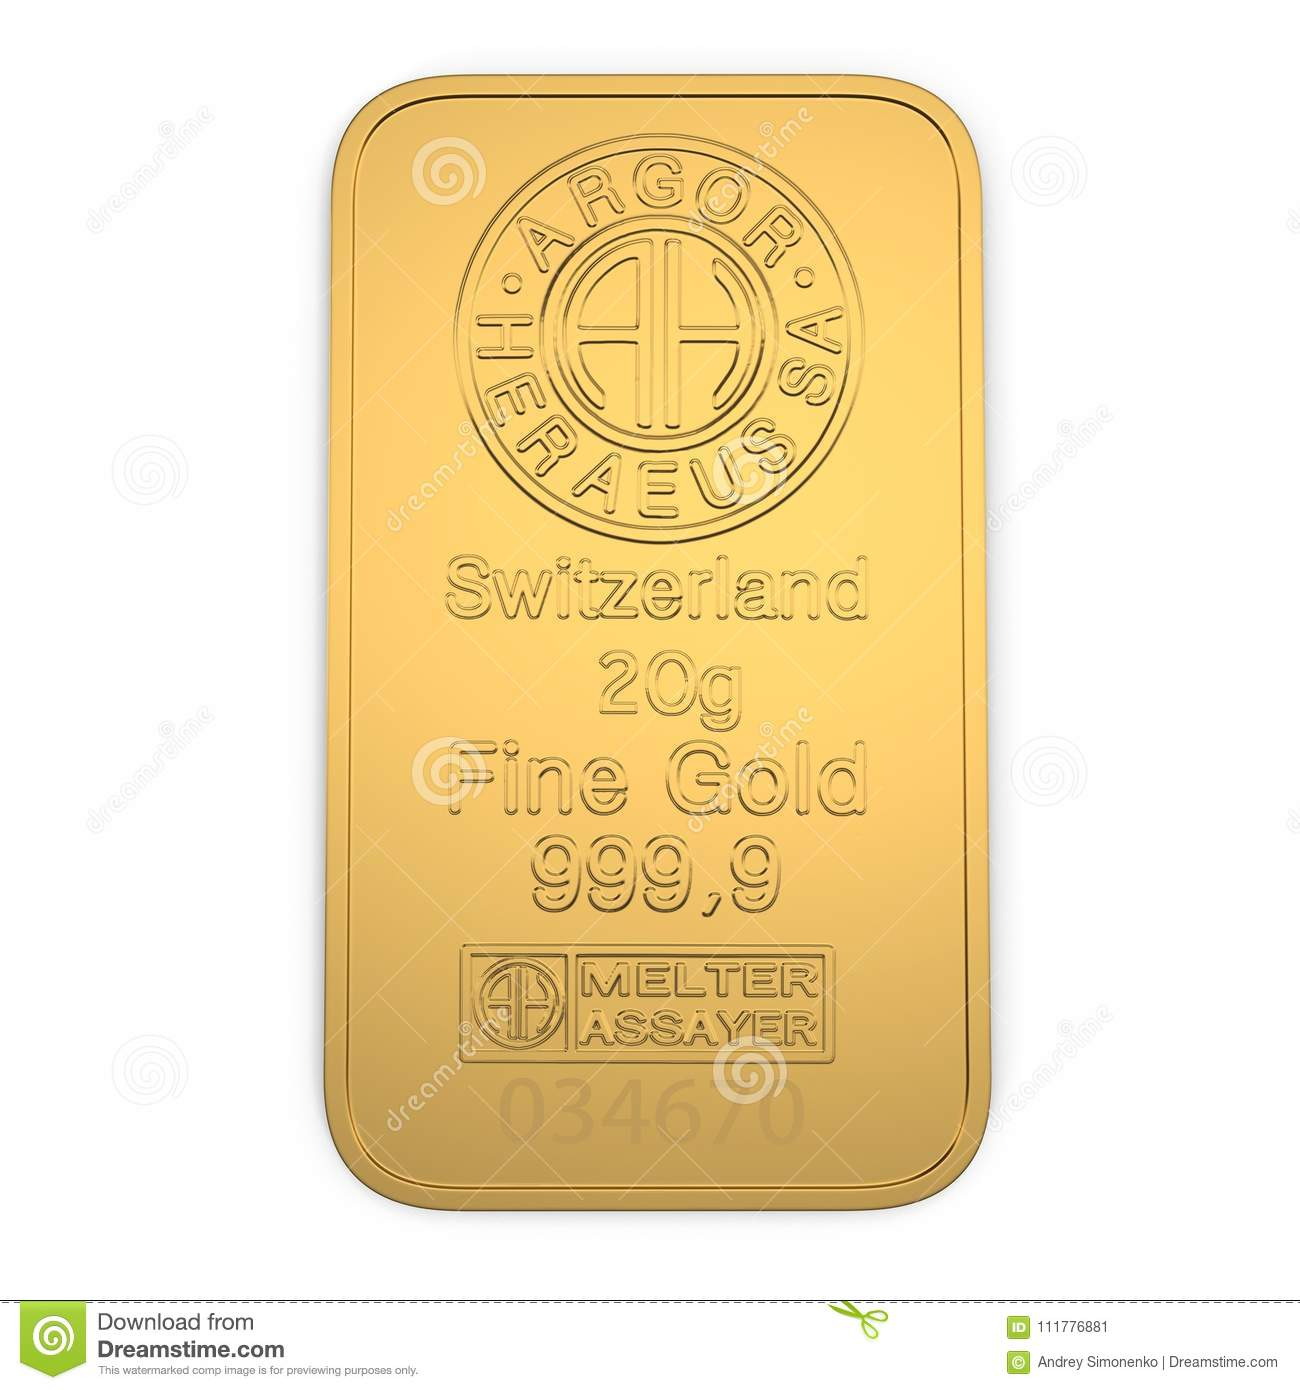 Gold bar 20g isolated on white. Top view. 3D illustration